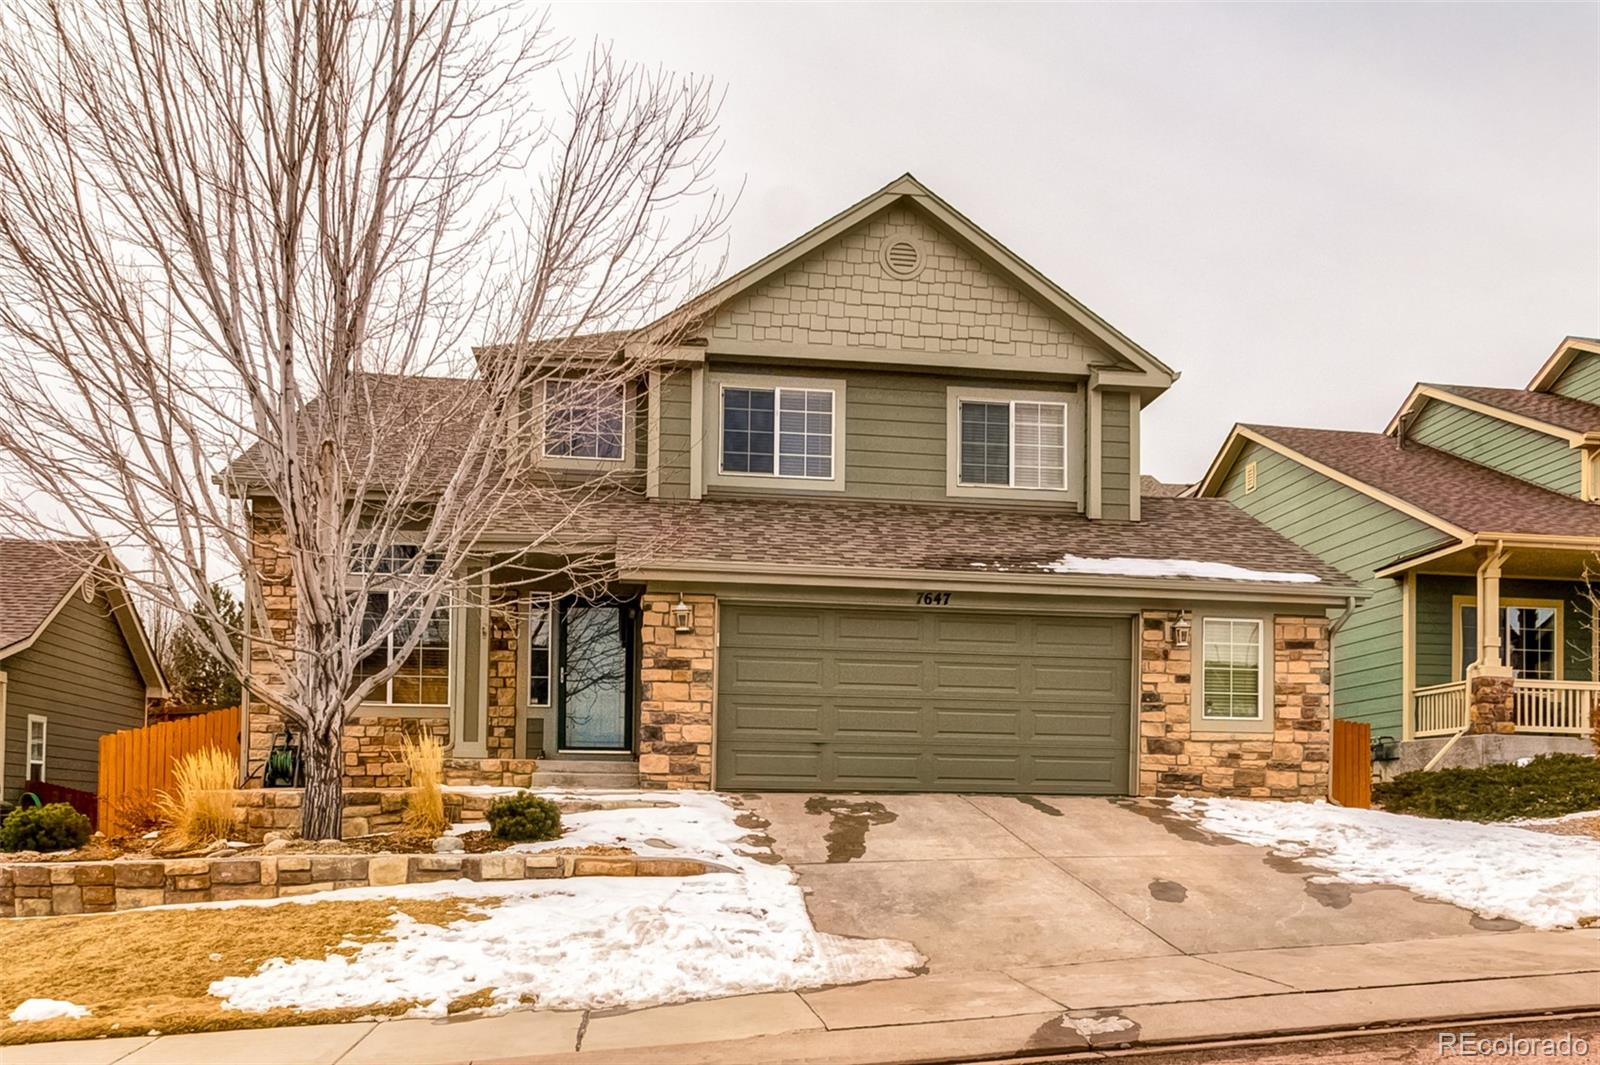 MLS# 8444903 - 1 - 7647 Bentwater Drive, Fountain, CO 80817